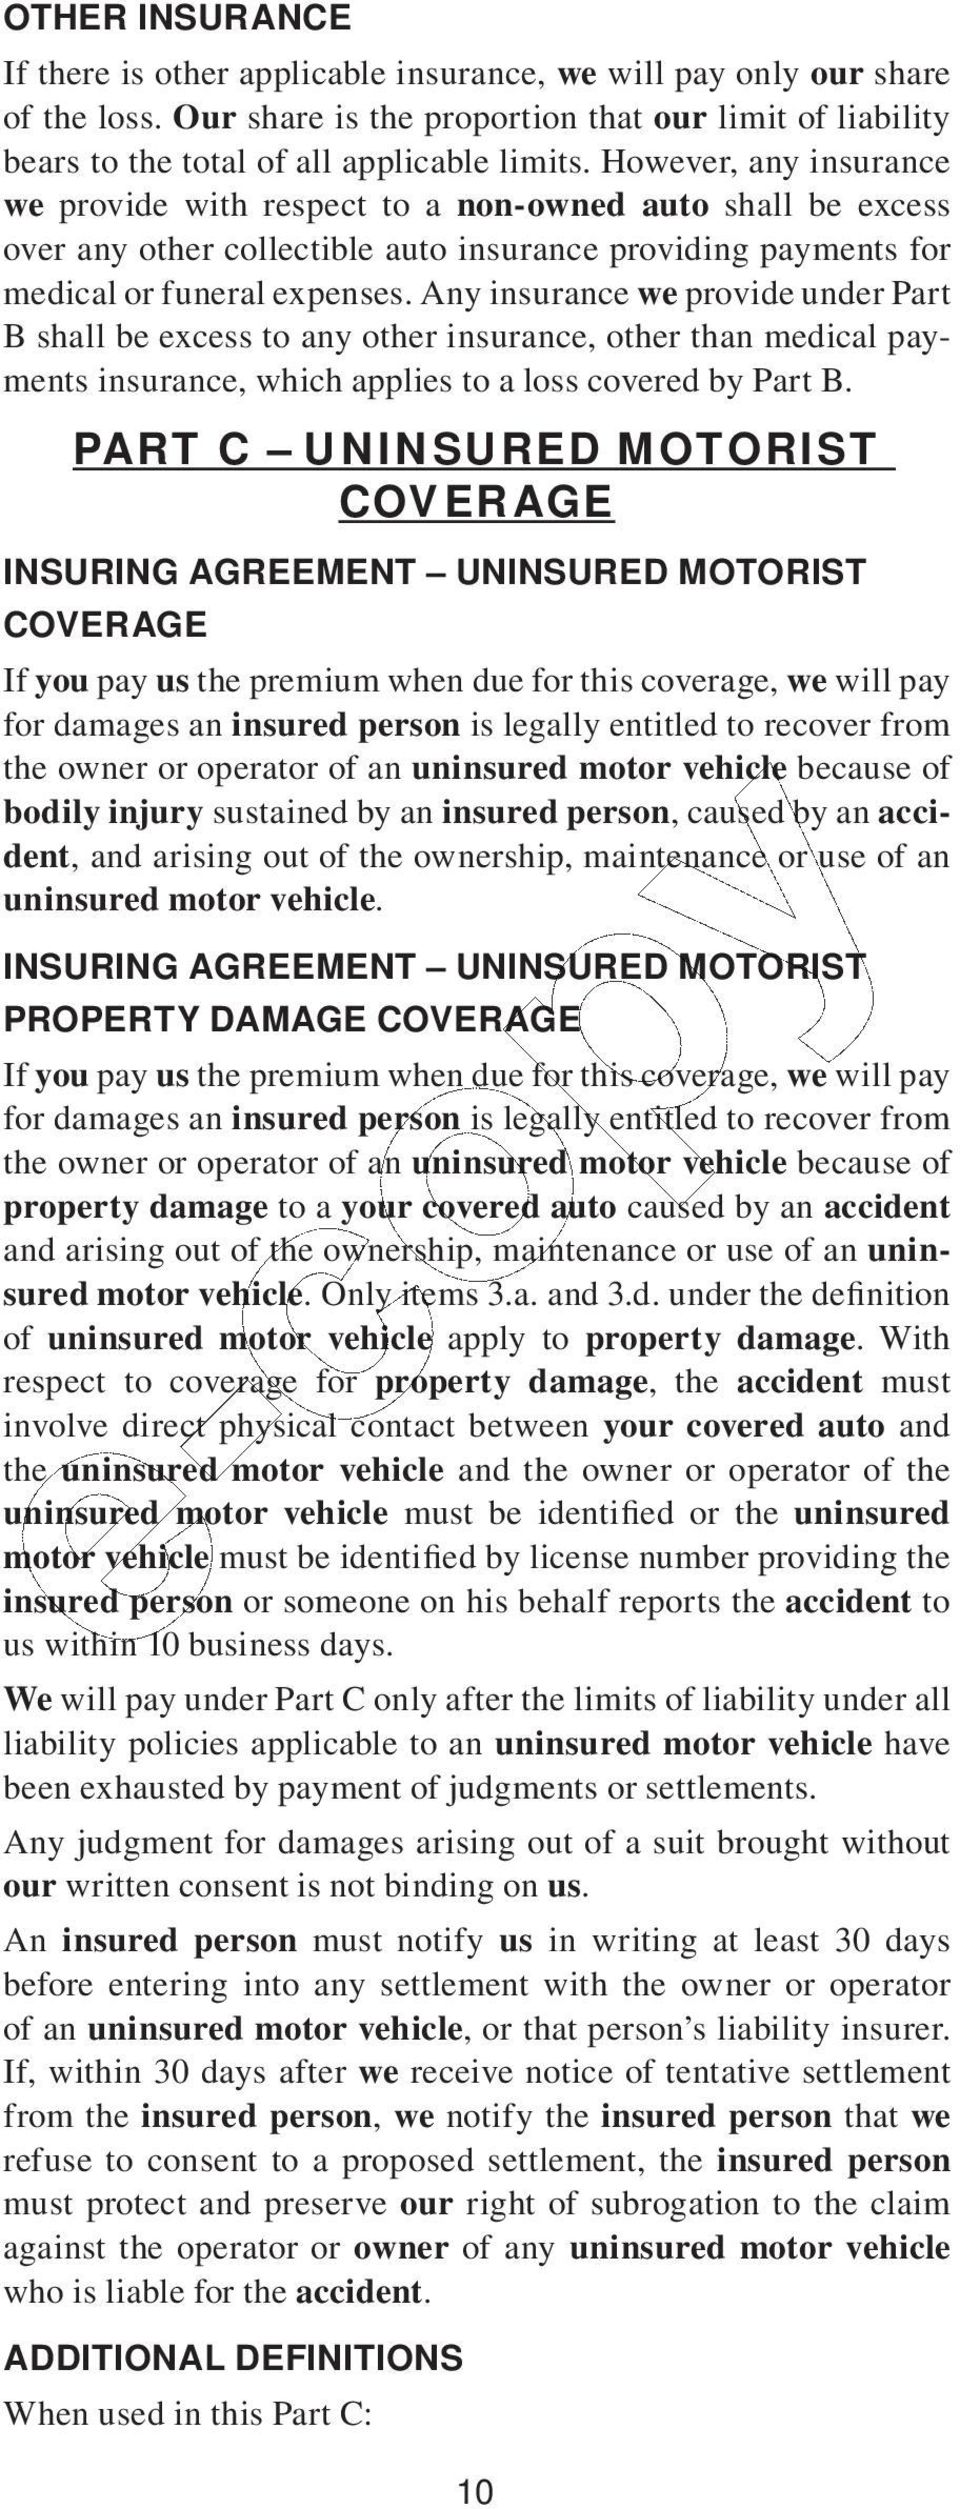 Any insurance we provide under Part B shall be excess to any other insurance, other than medical payments insurance, which applies to a loss covered by Part B.